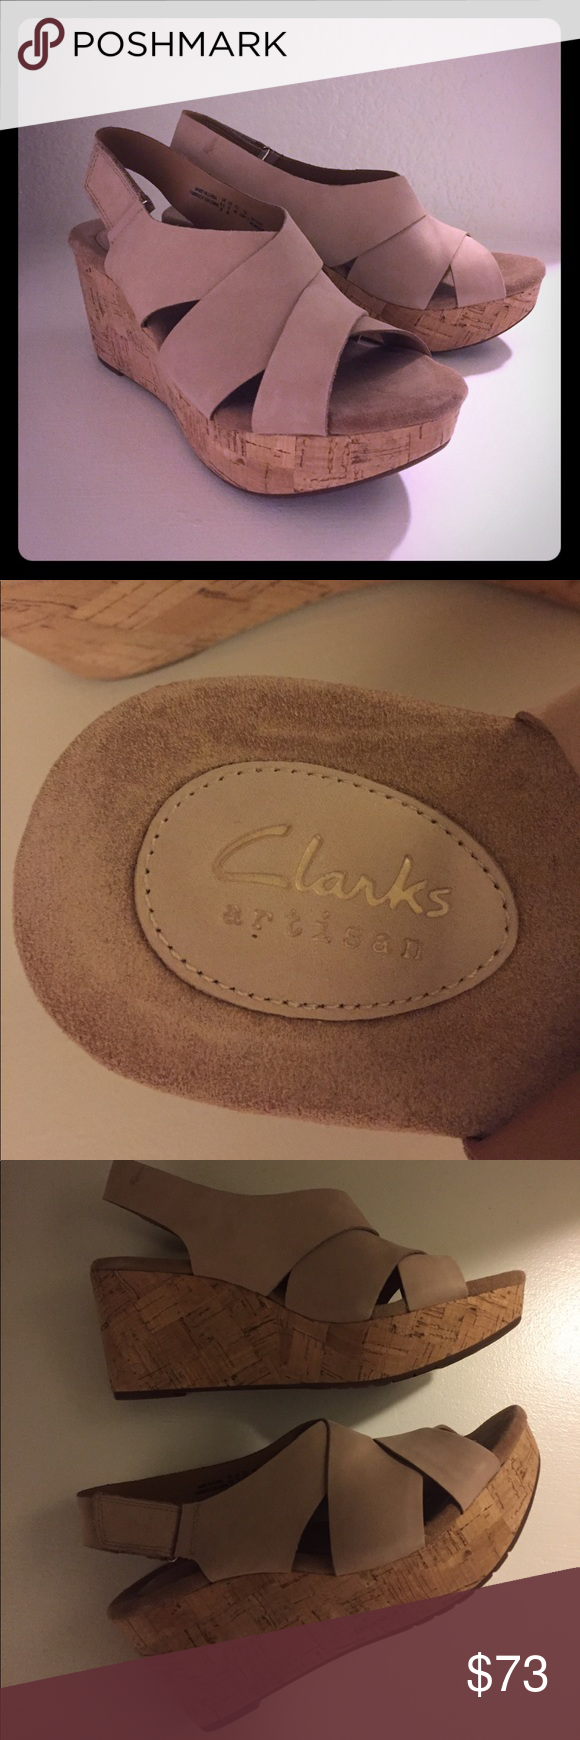 Clarks wedge sandals Beautiful nude colored Clarks wedge sandals.  Never worn! Super padded footbed for lots of comfort. Great for spring! Clarks Shoes Sandals